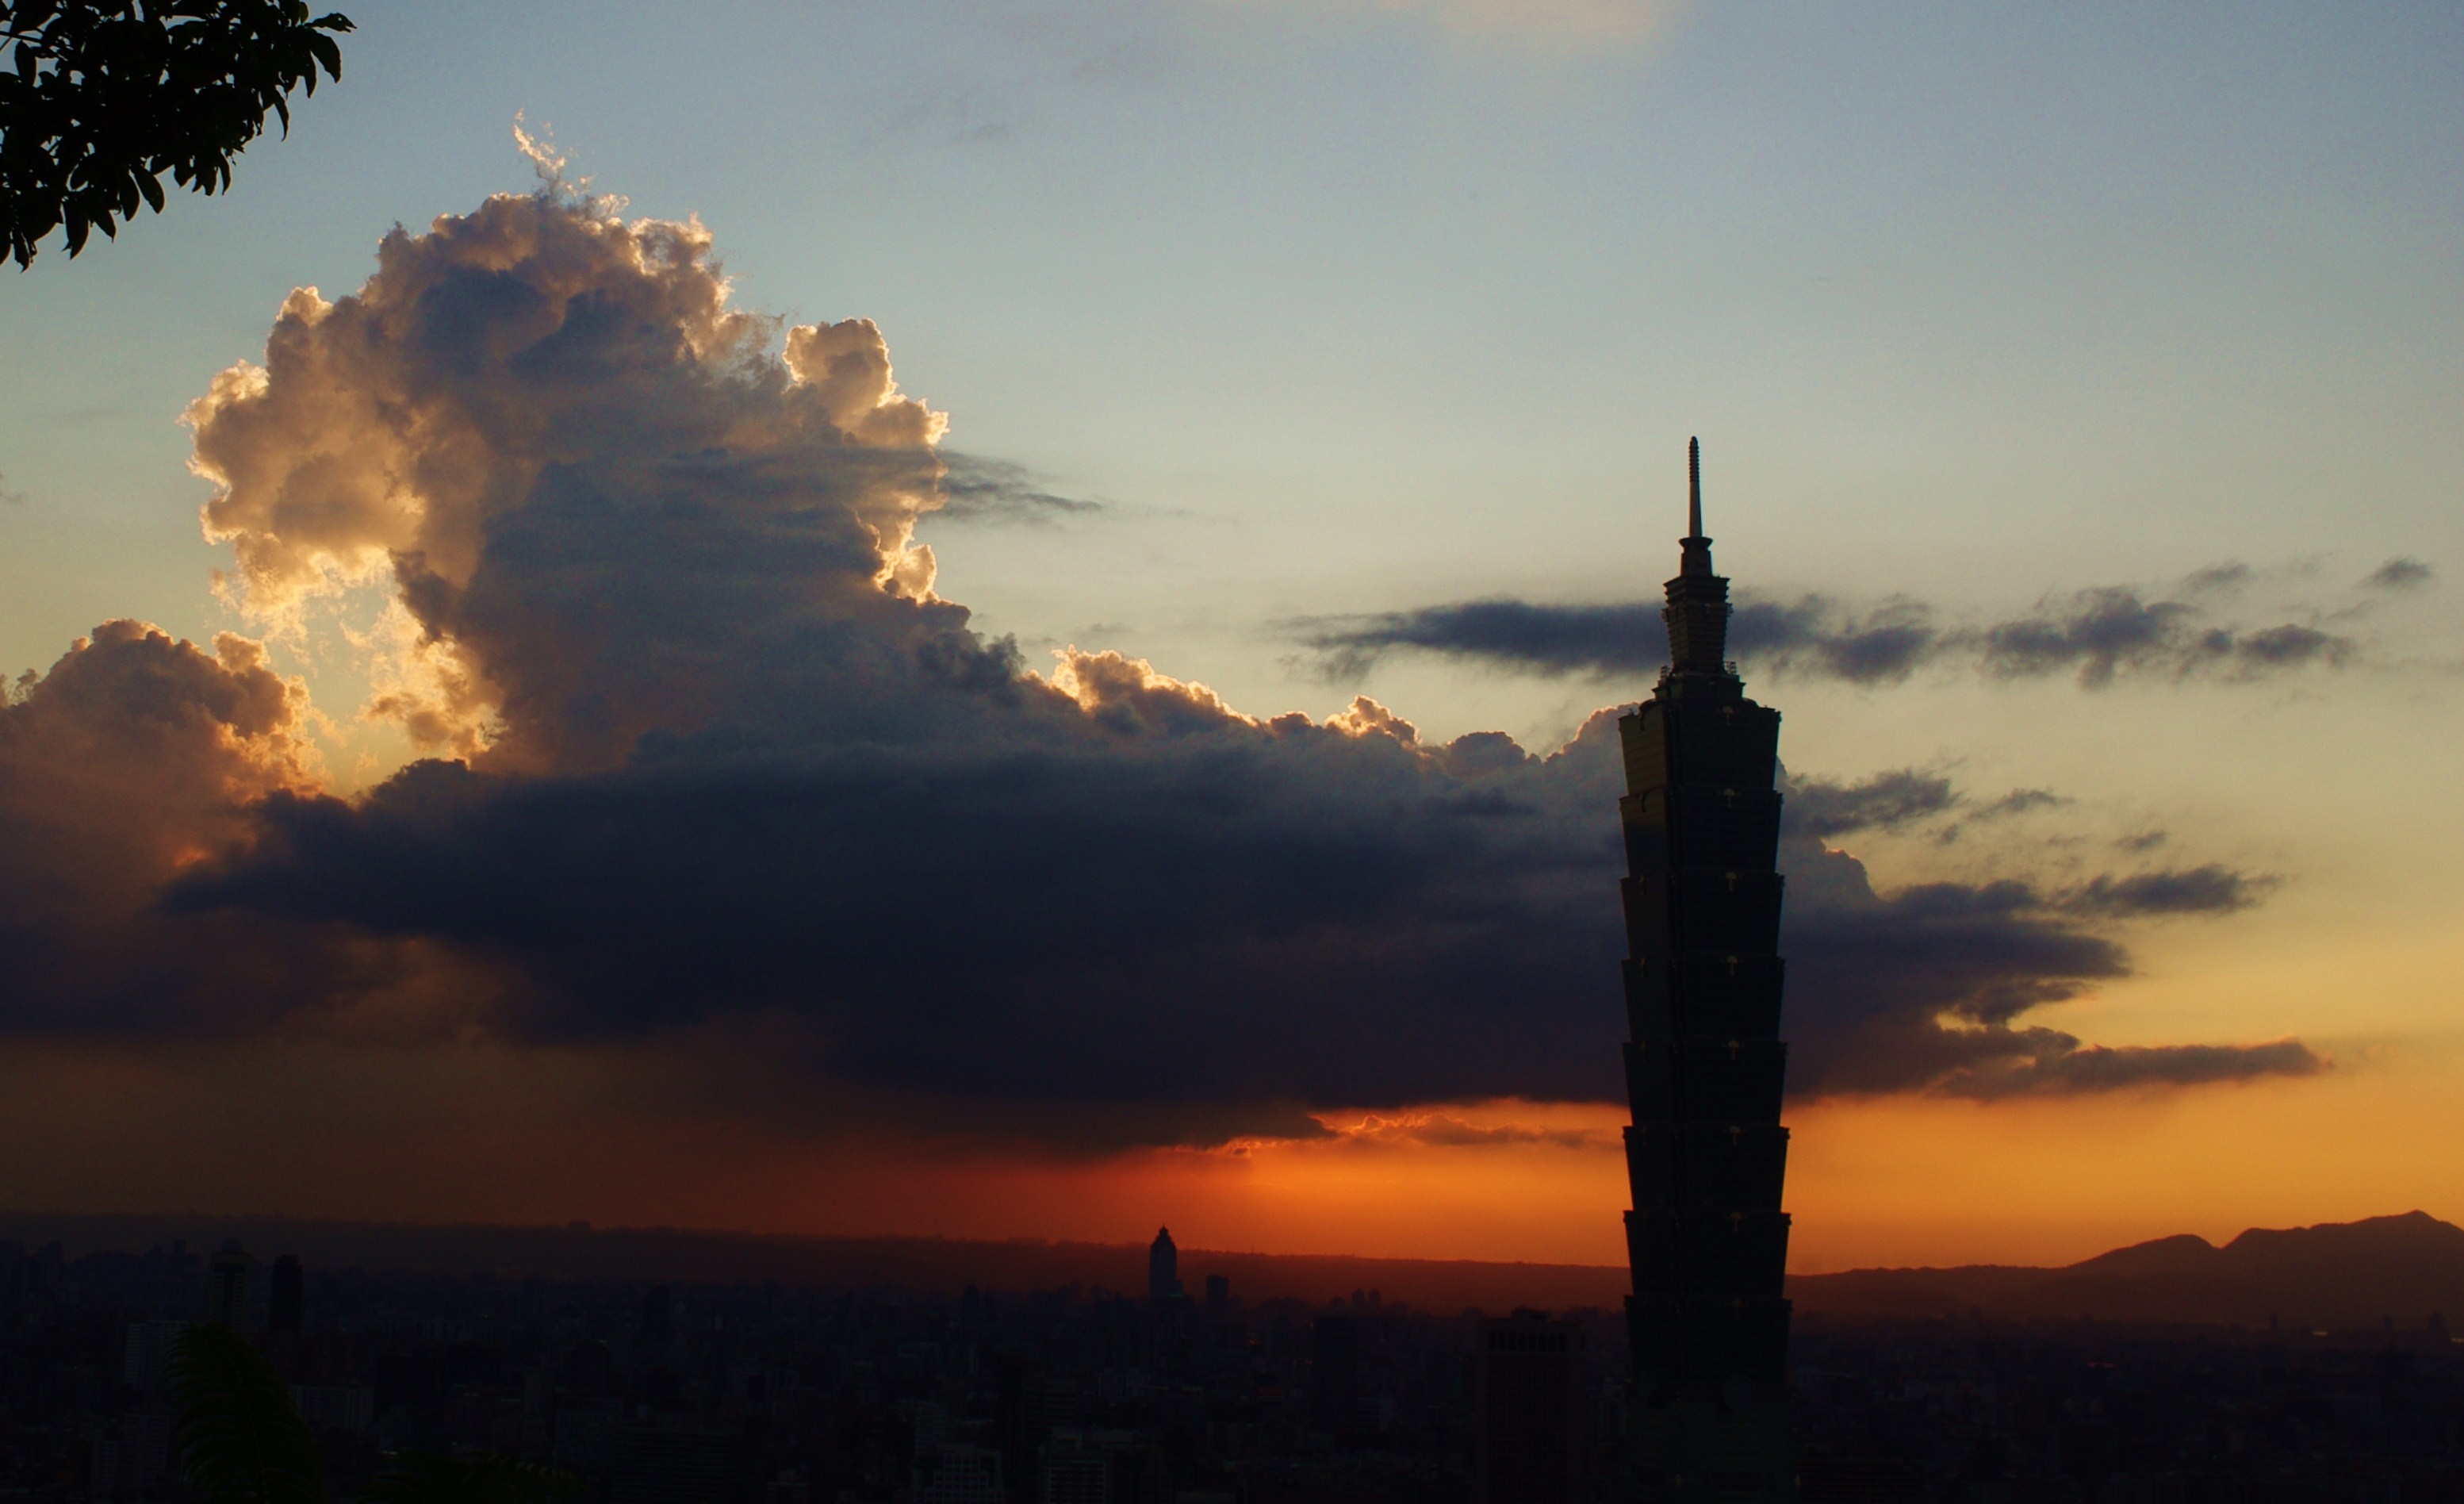 essay on taipei 101 Ieng2020 taipei 101 reseaarch paper nagakane - download as open office file (odt), pdf file (pdf), text file (txt) or read online.